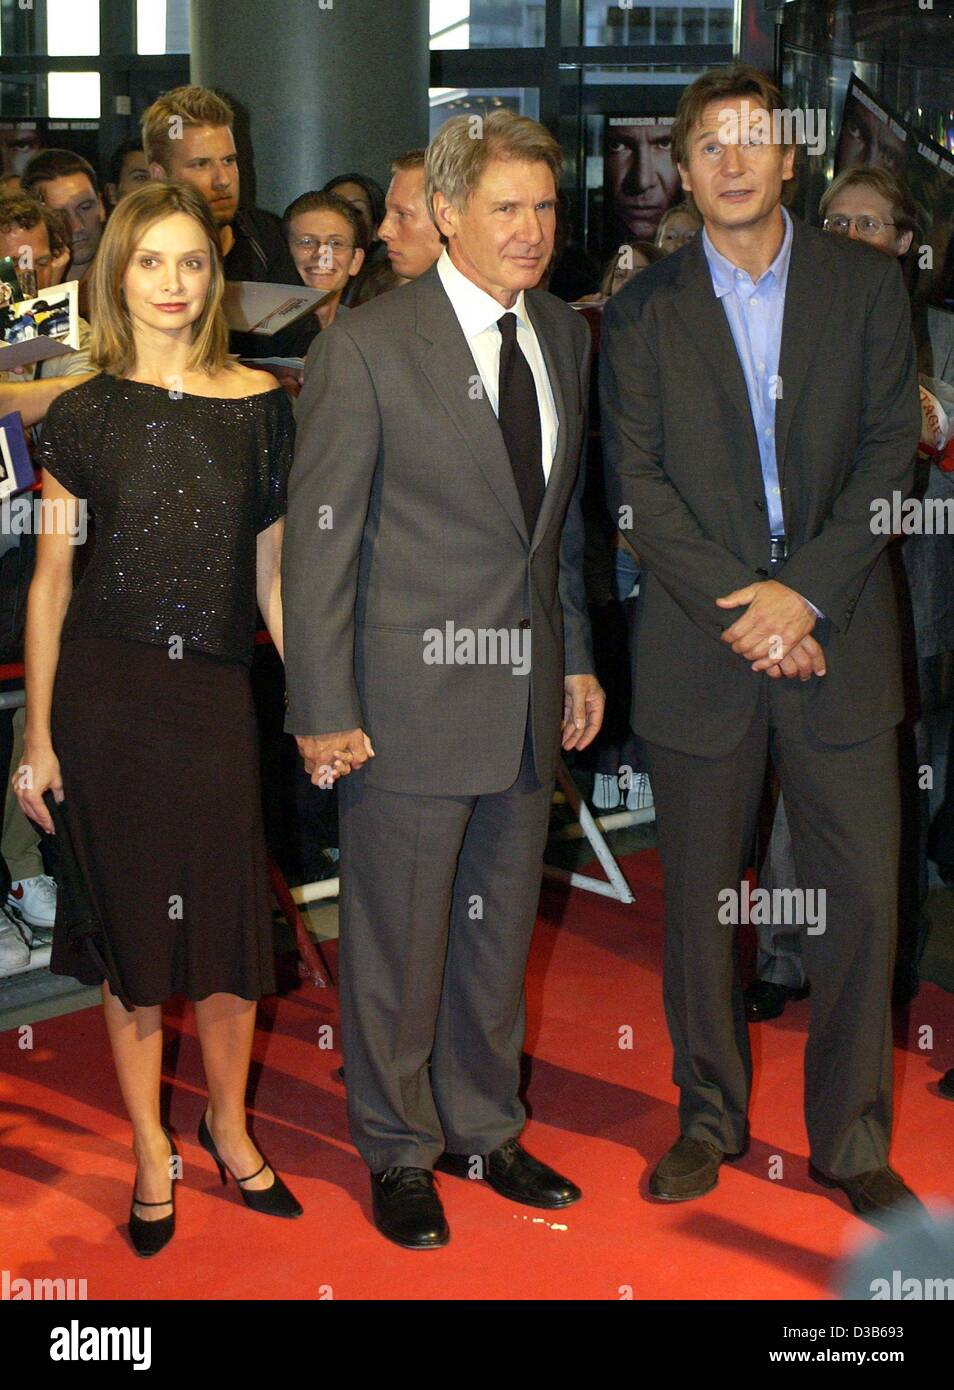 ¿Cuánto mide Harrison Ford? - Altura - Real height Dpa-hollywood-star-harrison-ford-m-arrives-with-his-girlfriend-calista-D3B693